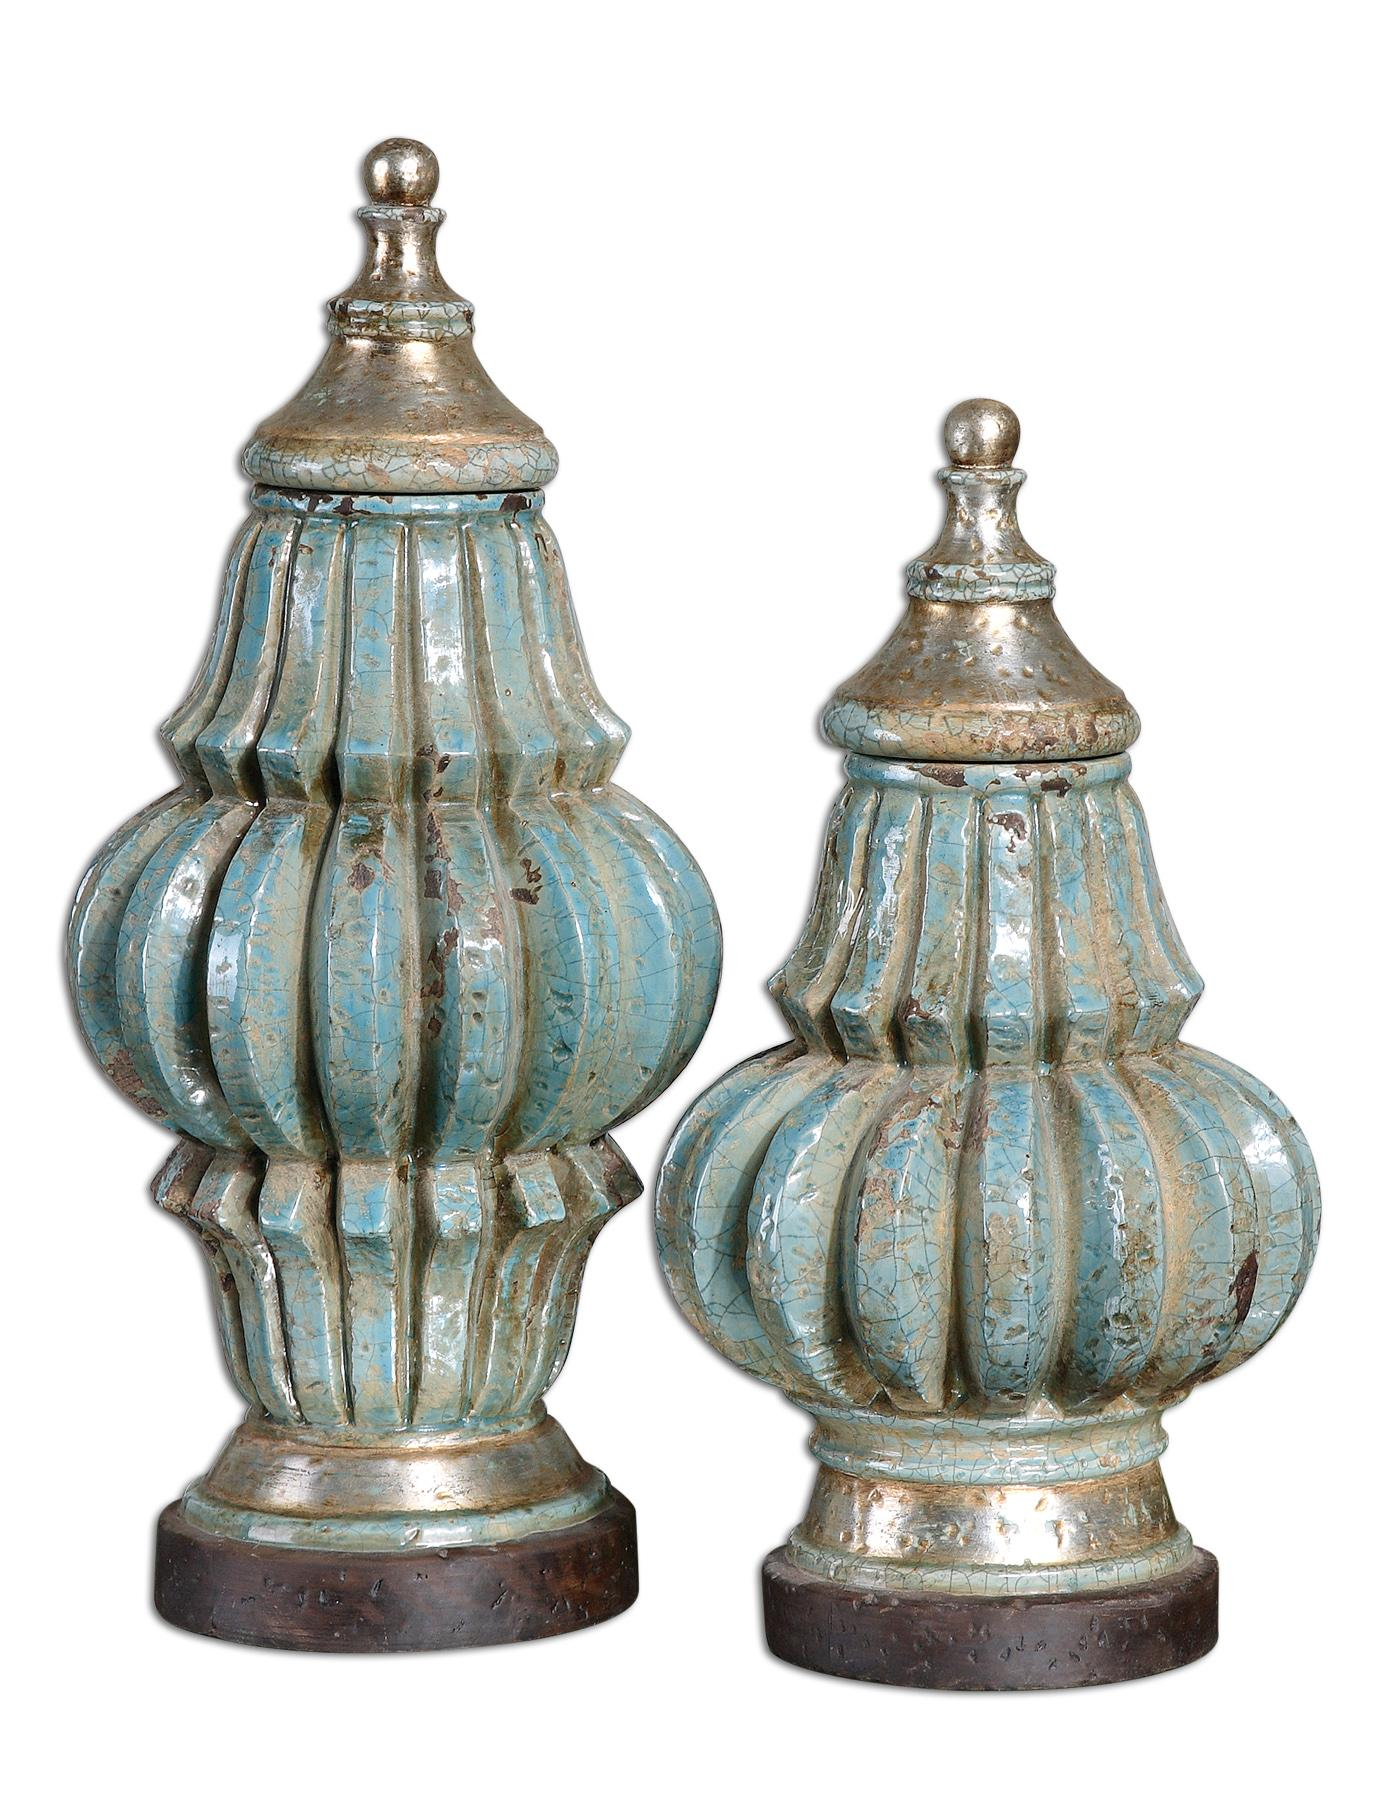 Uttermost Accessories FatimaUrns Set of 2 - Item Number: 19546